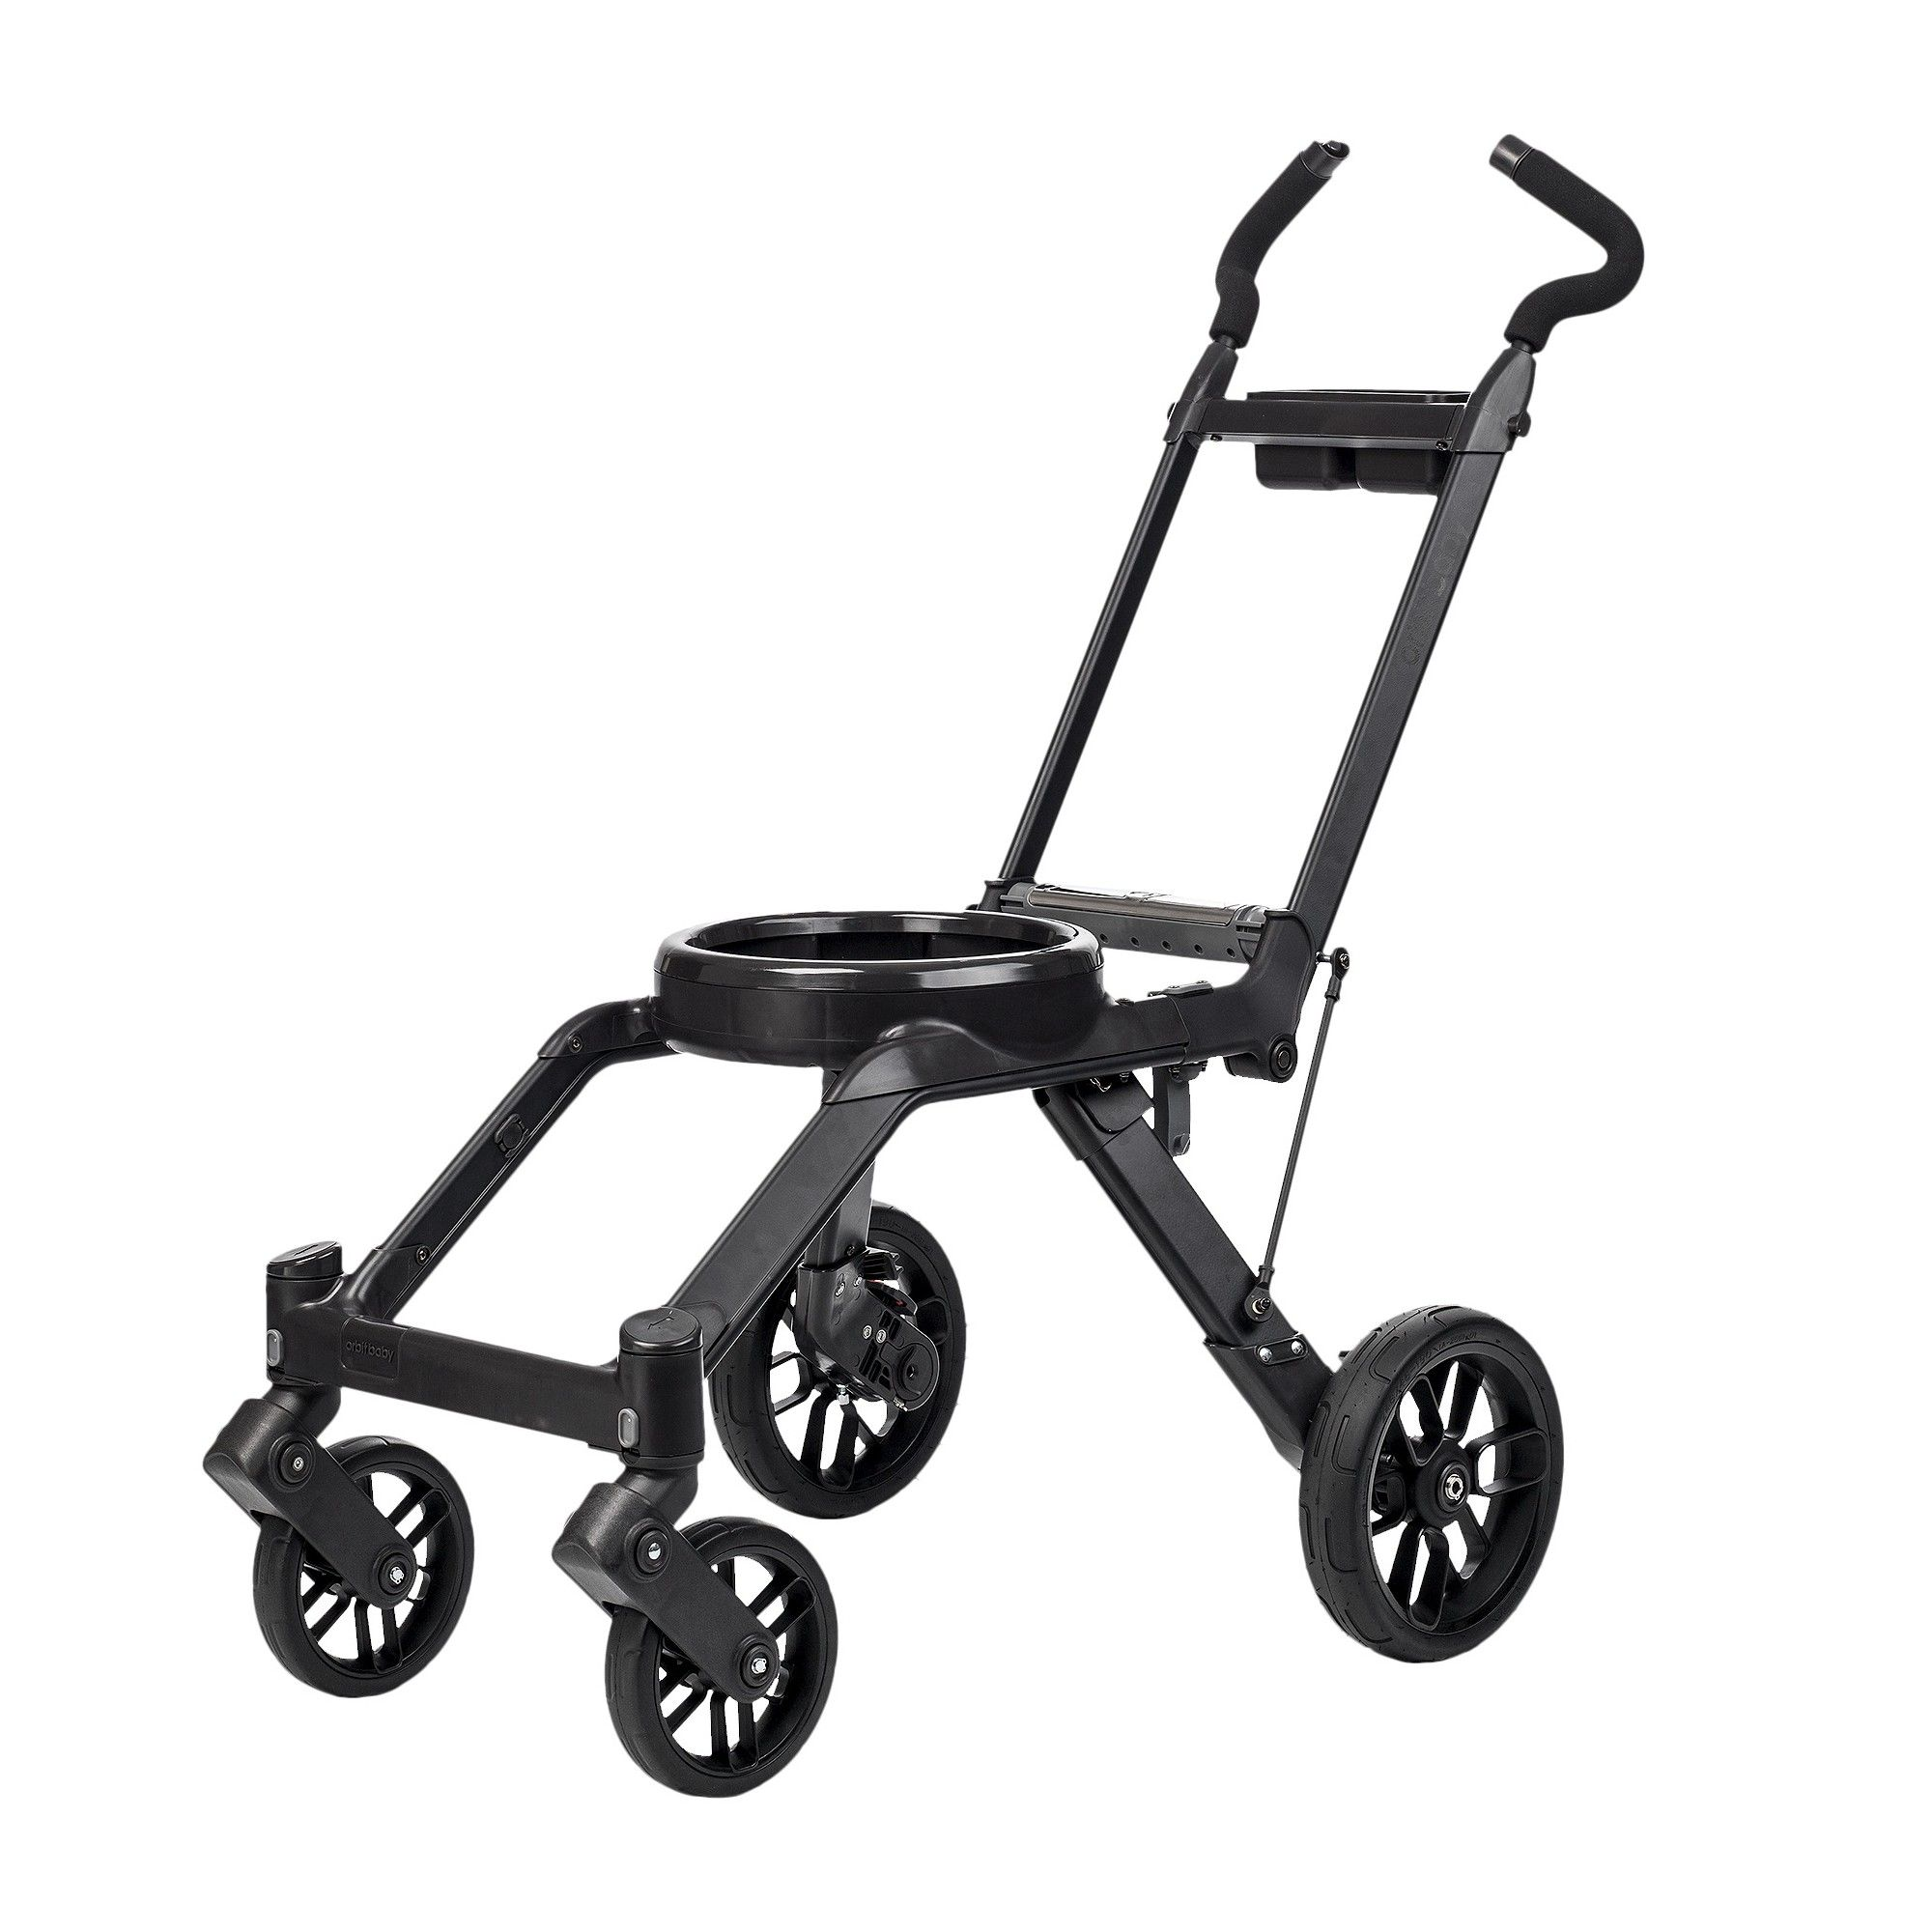 Orbit Baby G3 Stroller Frame Black